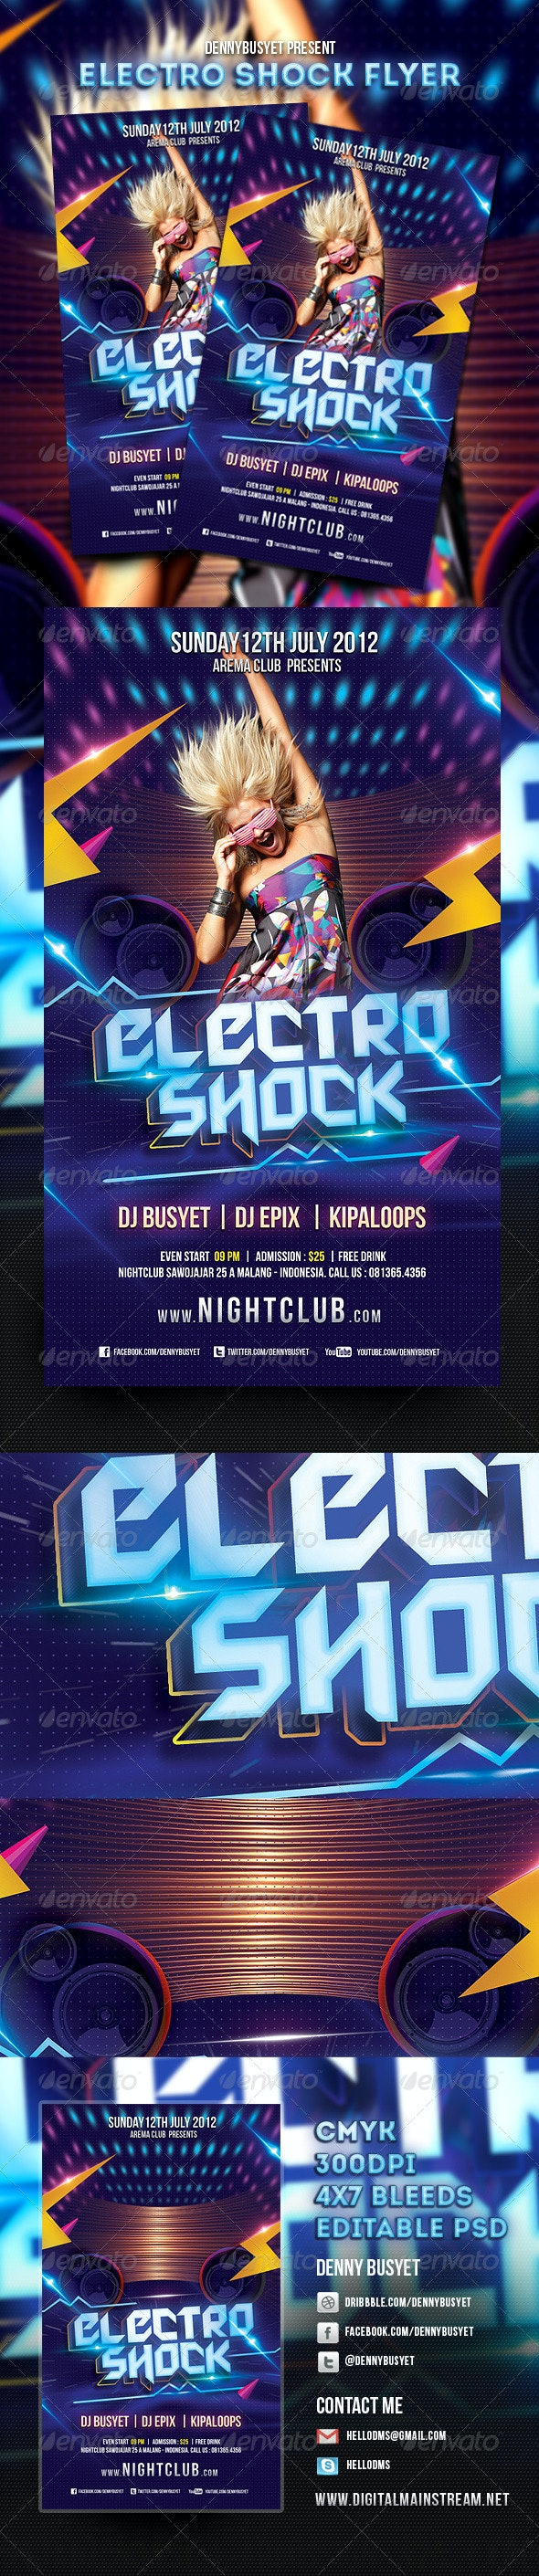 Electro Shock Flyer Template - Clubs & Parties Events